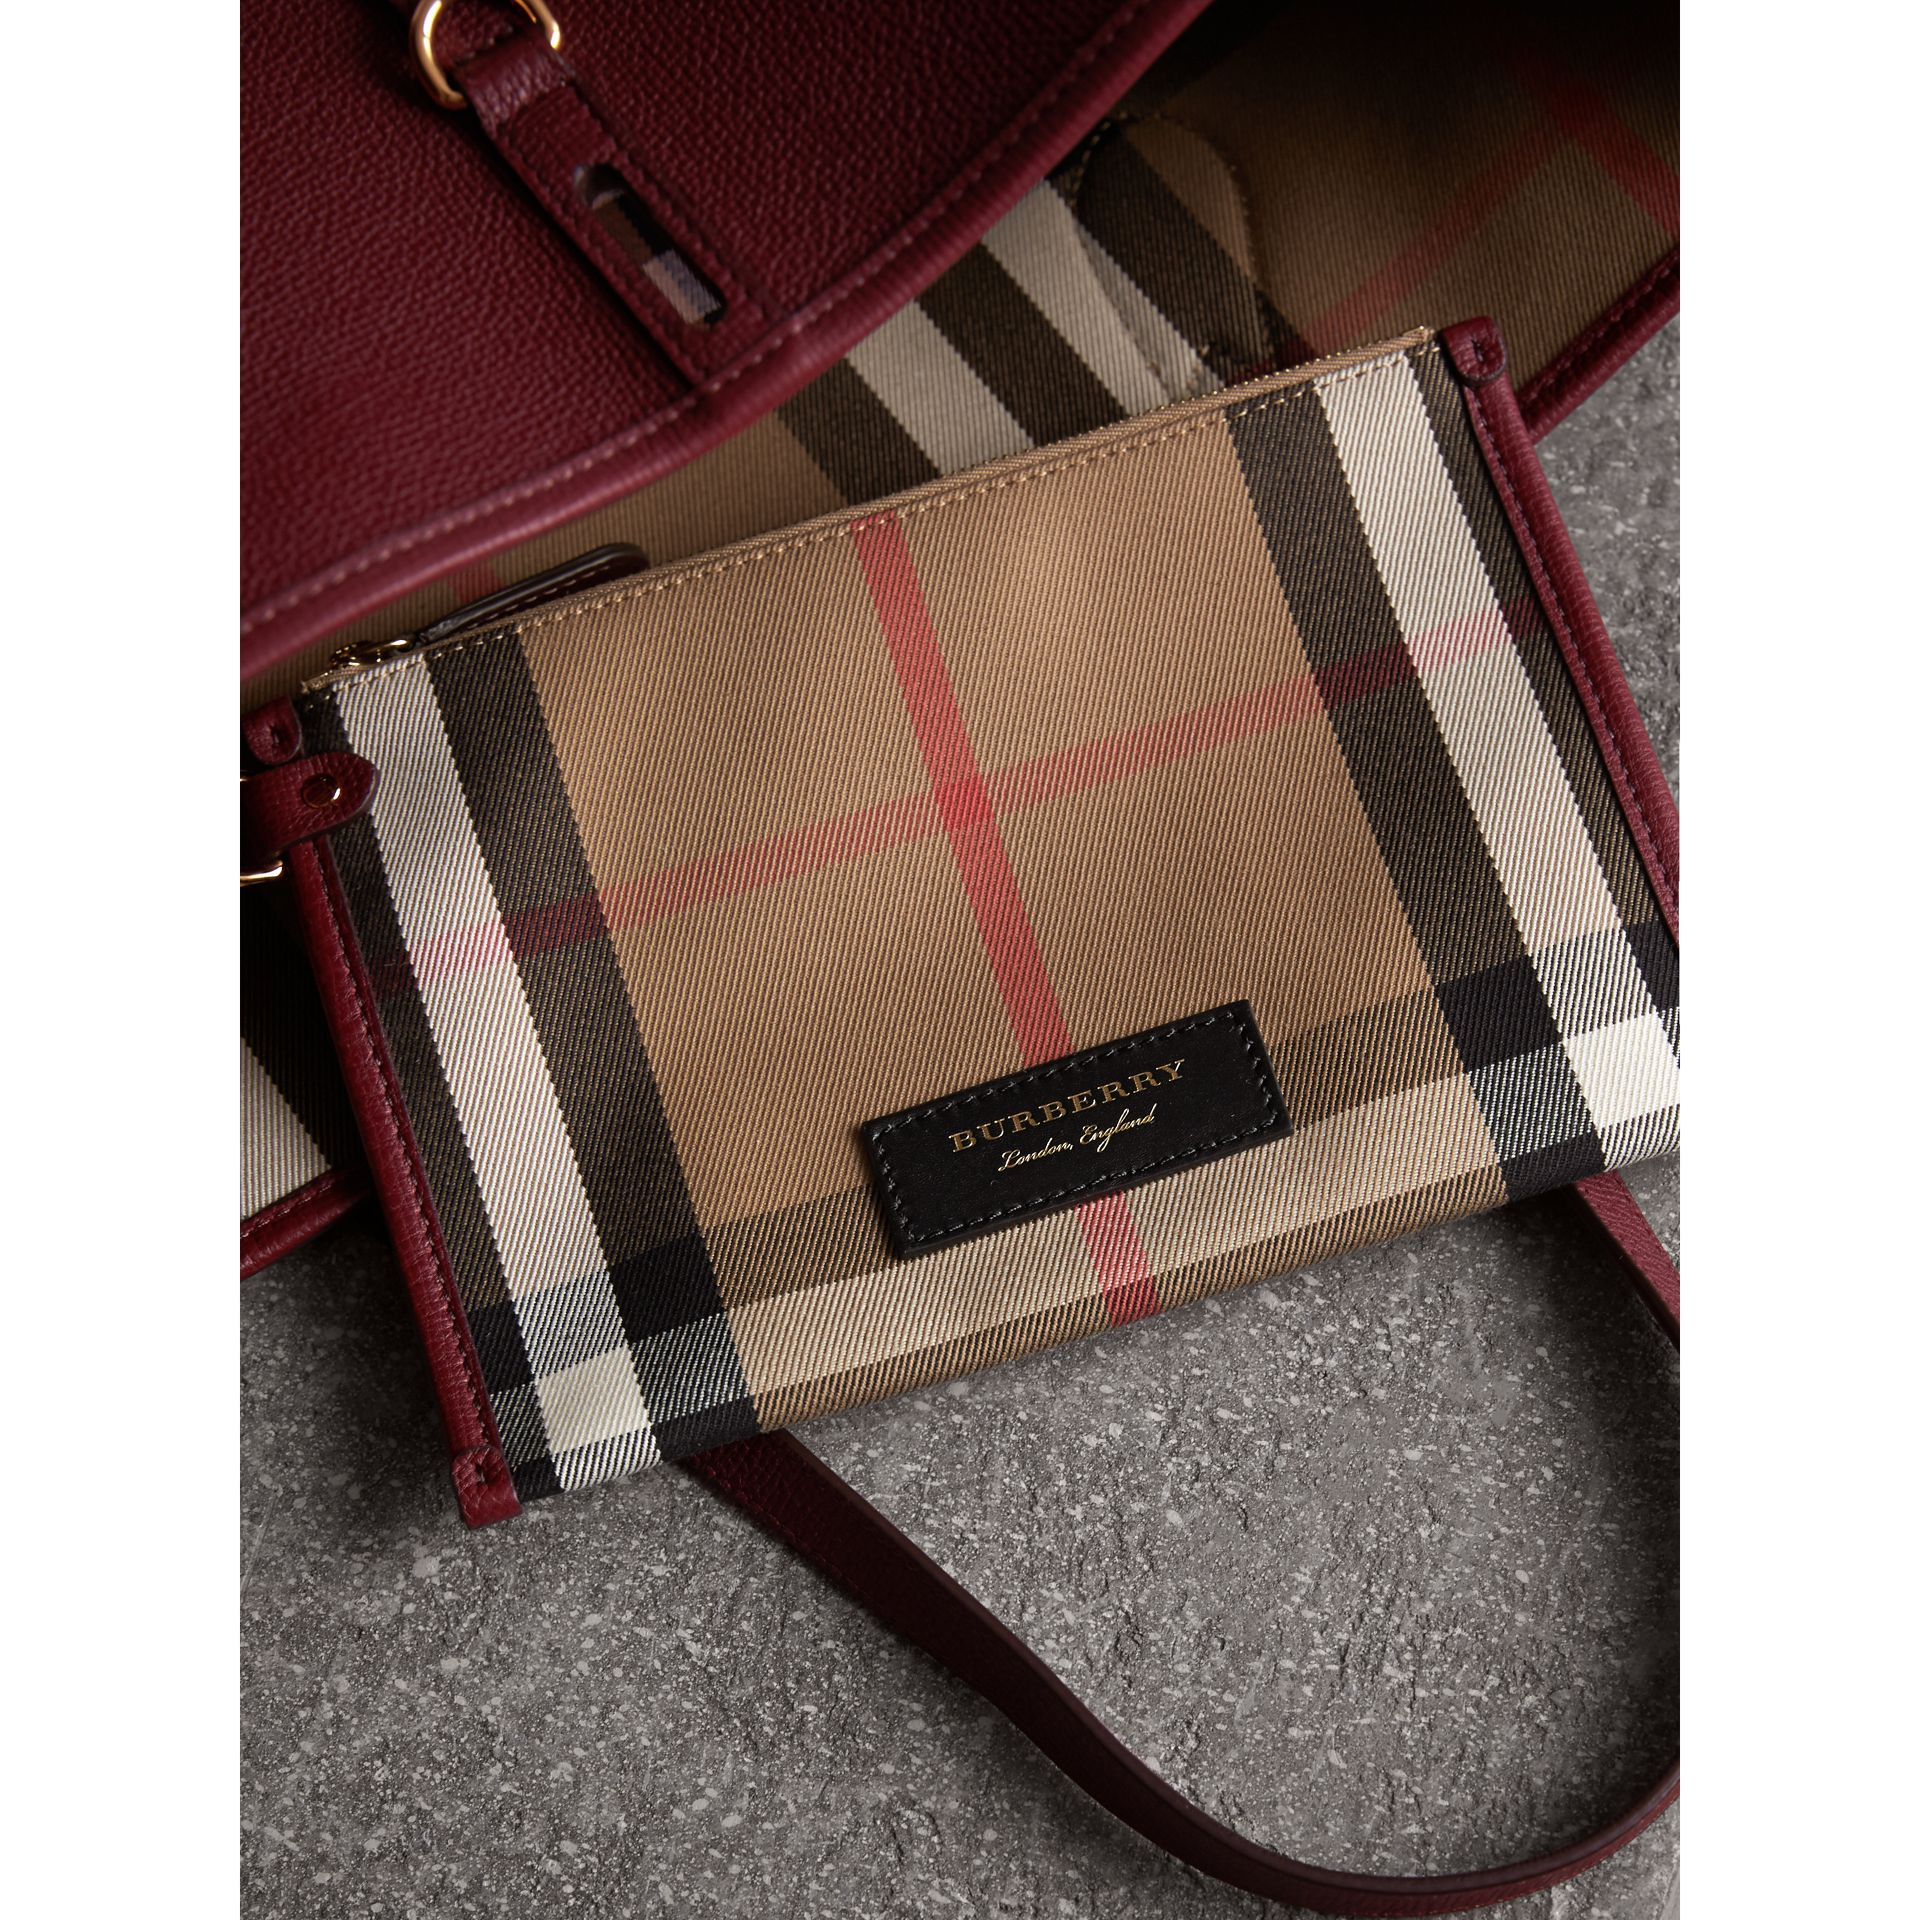 Medium Grainy Leather Tote Bag in Mahogany Red - Women | Burberry United States - gallery image 5